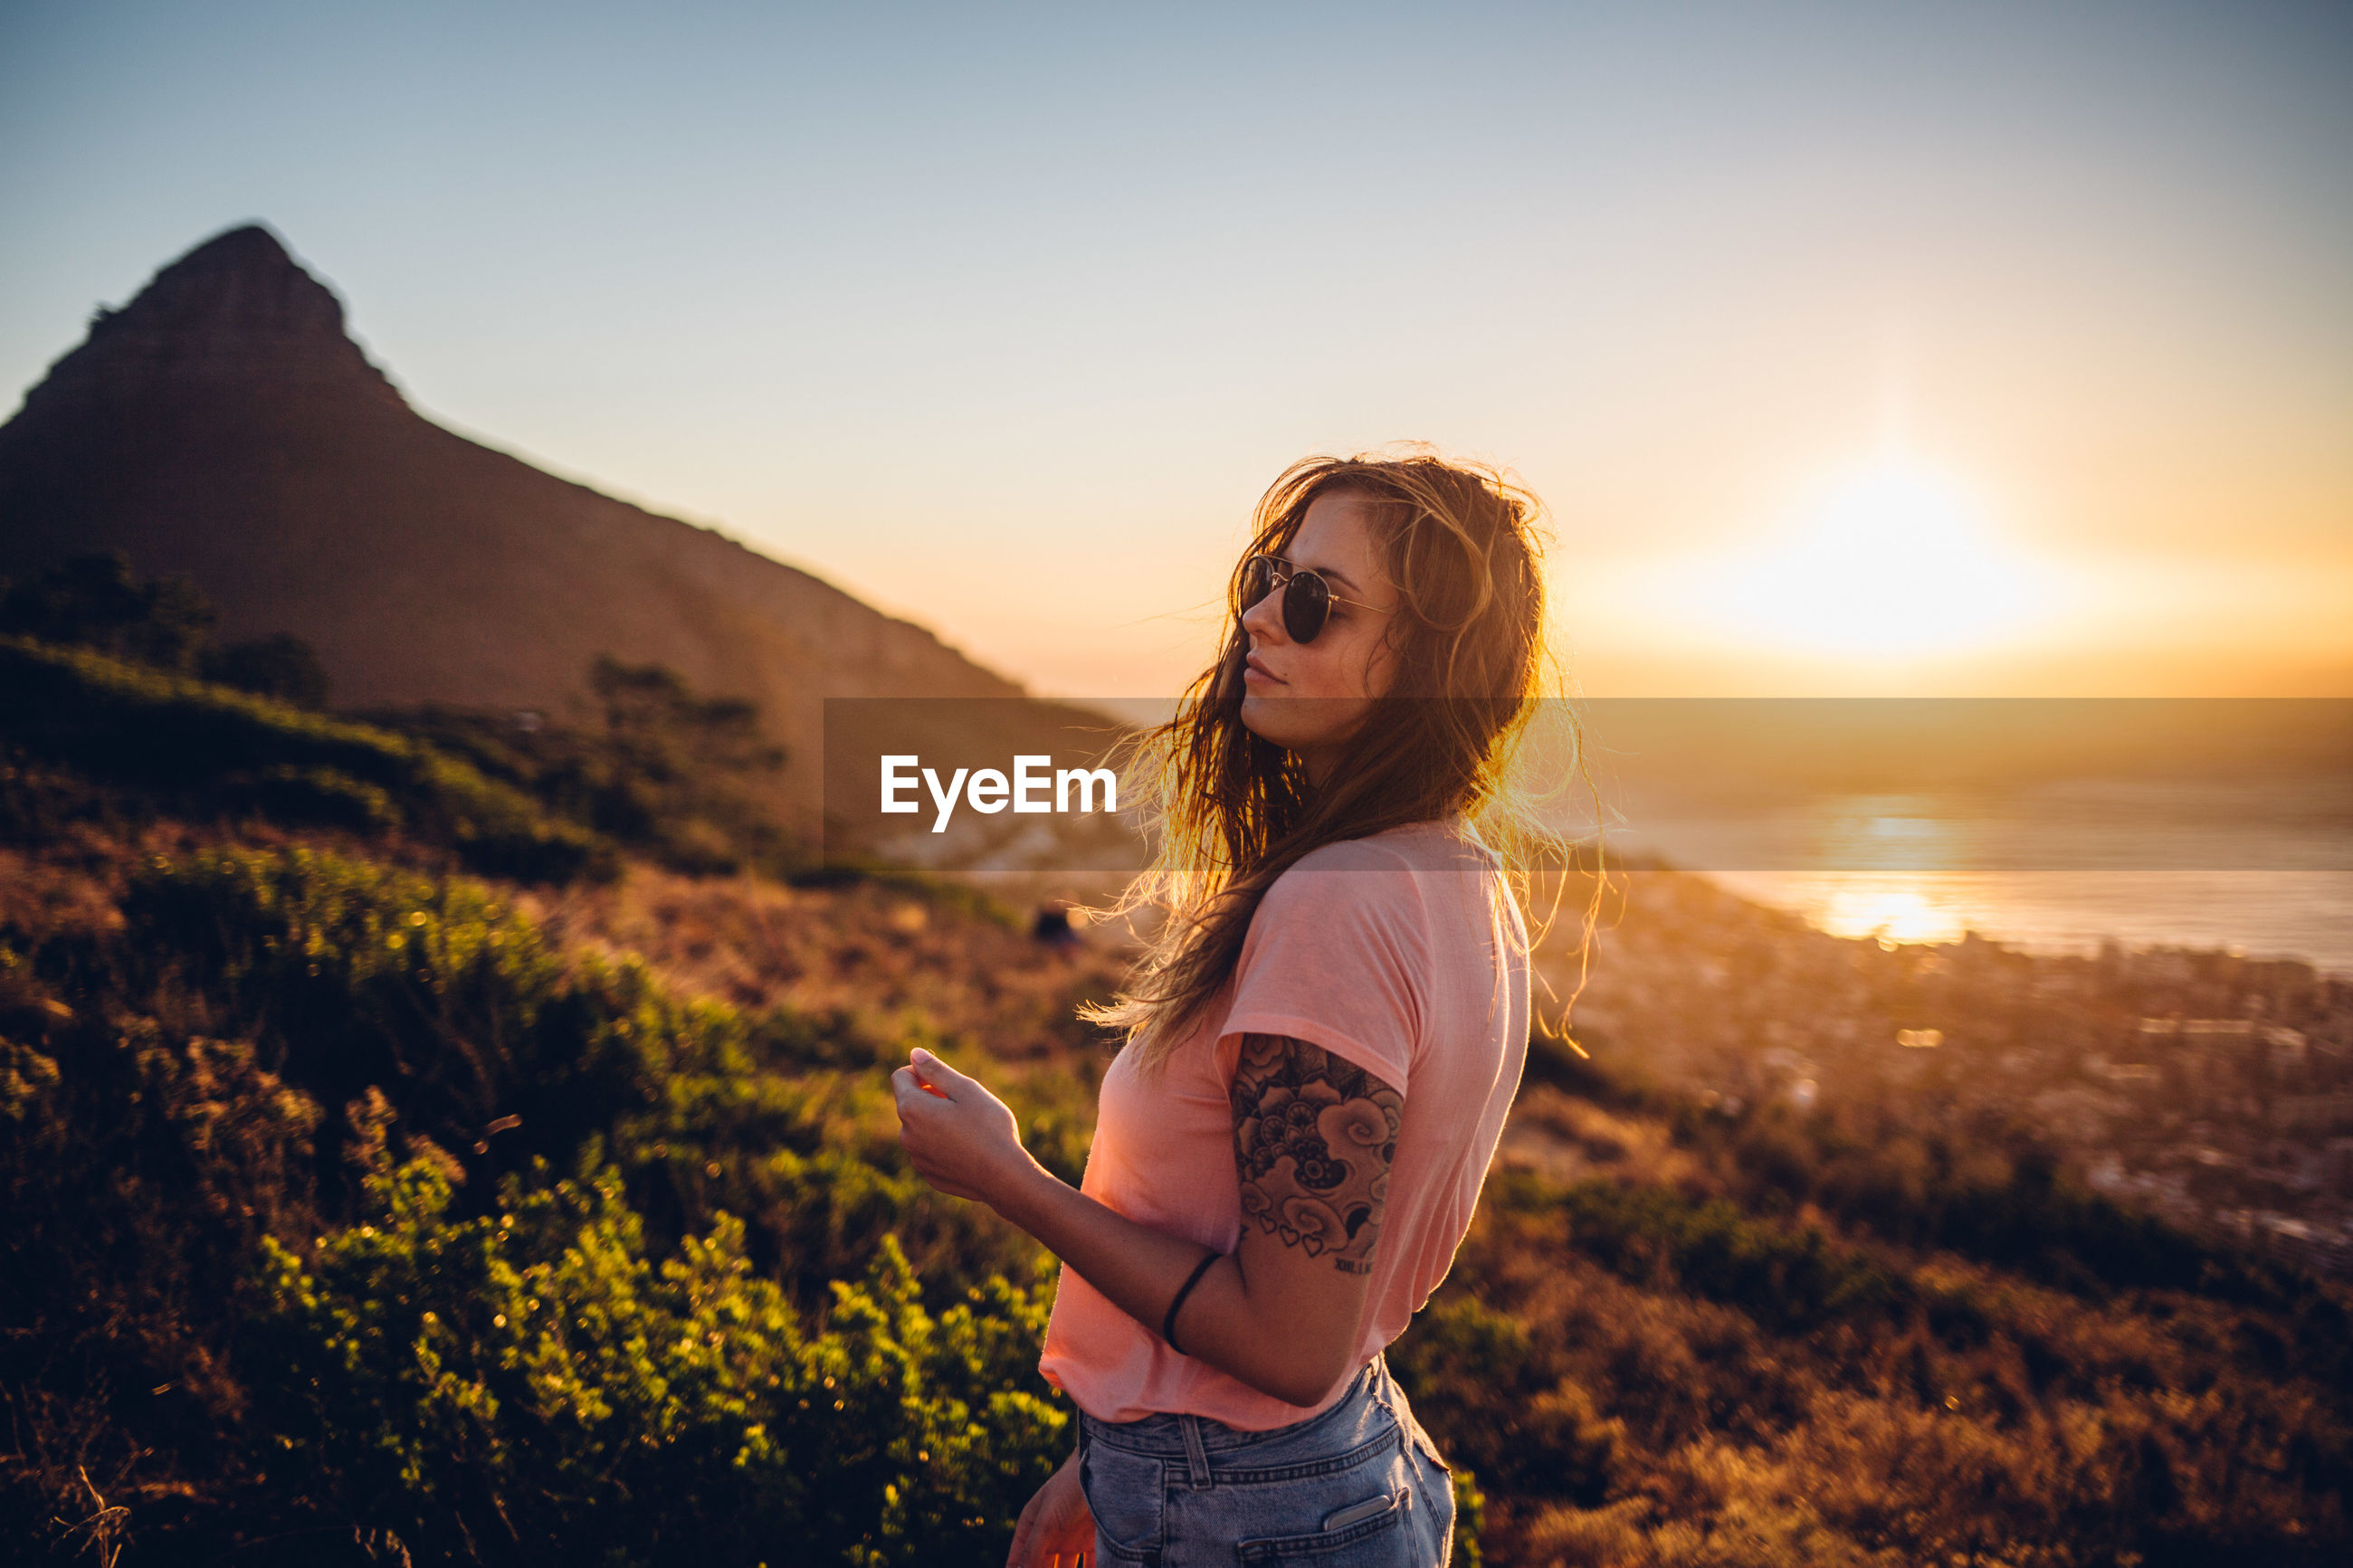 YOUNG WOMAN WEARING SUNGLASSES STANDING ON LAND AT SUNSET